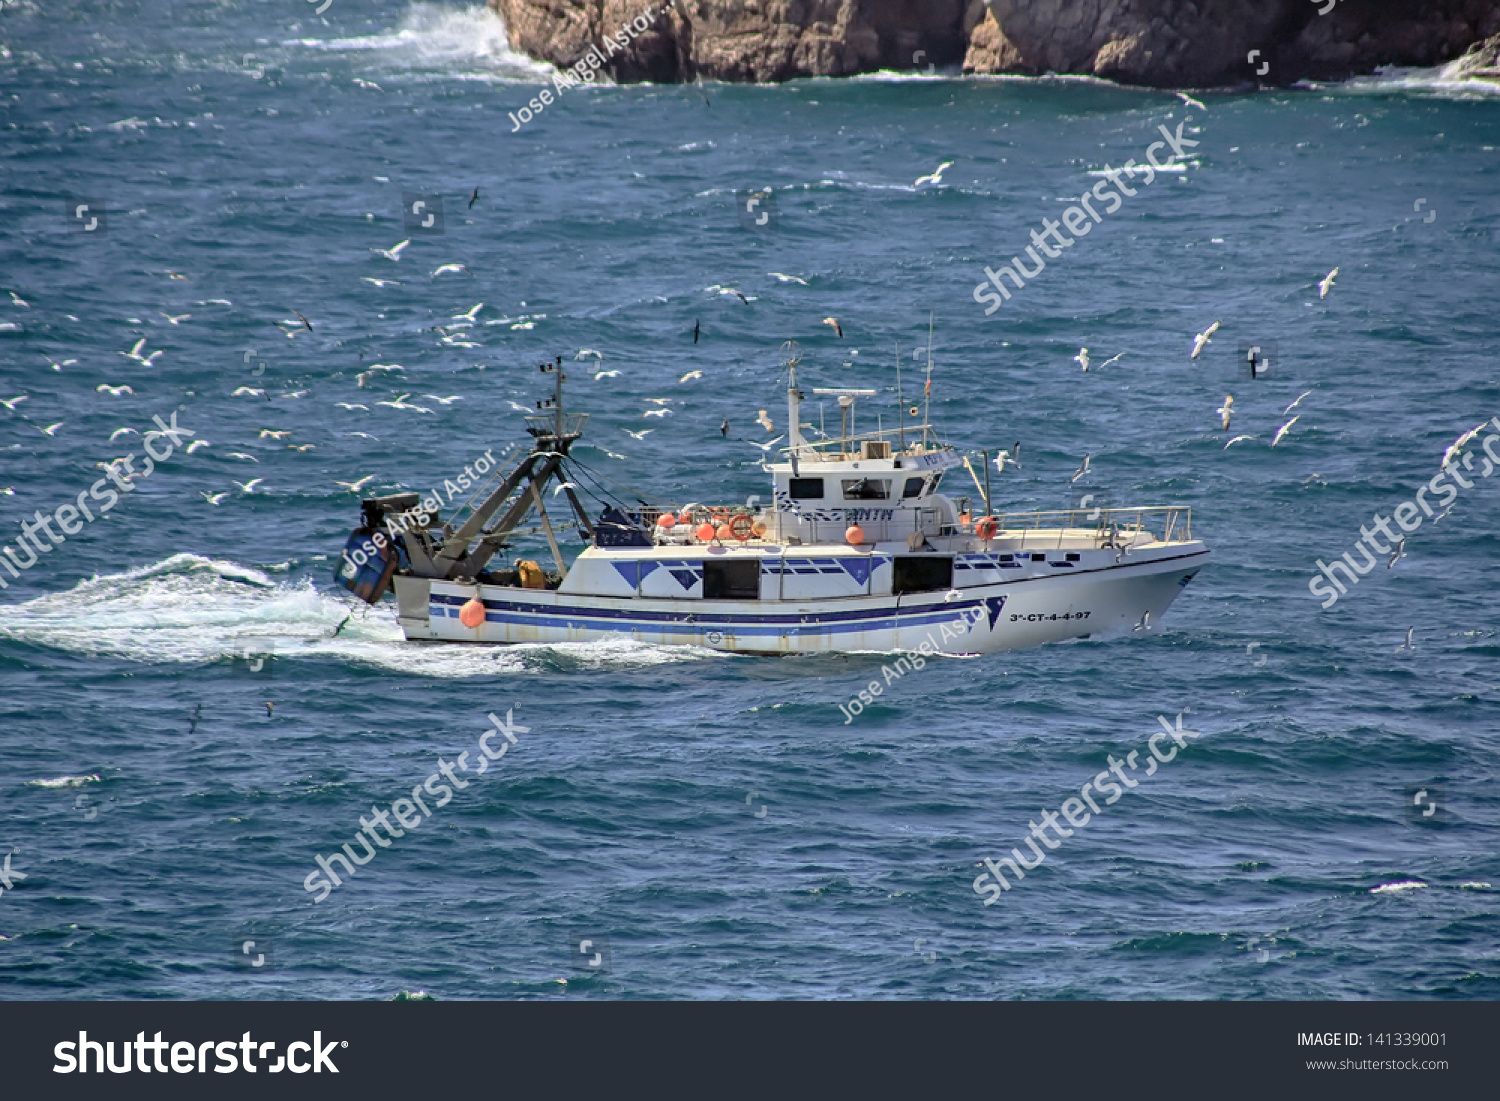 Small fishing boat sailing near coast stock photo for Where to get a fishing license near me